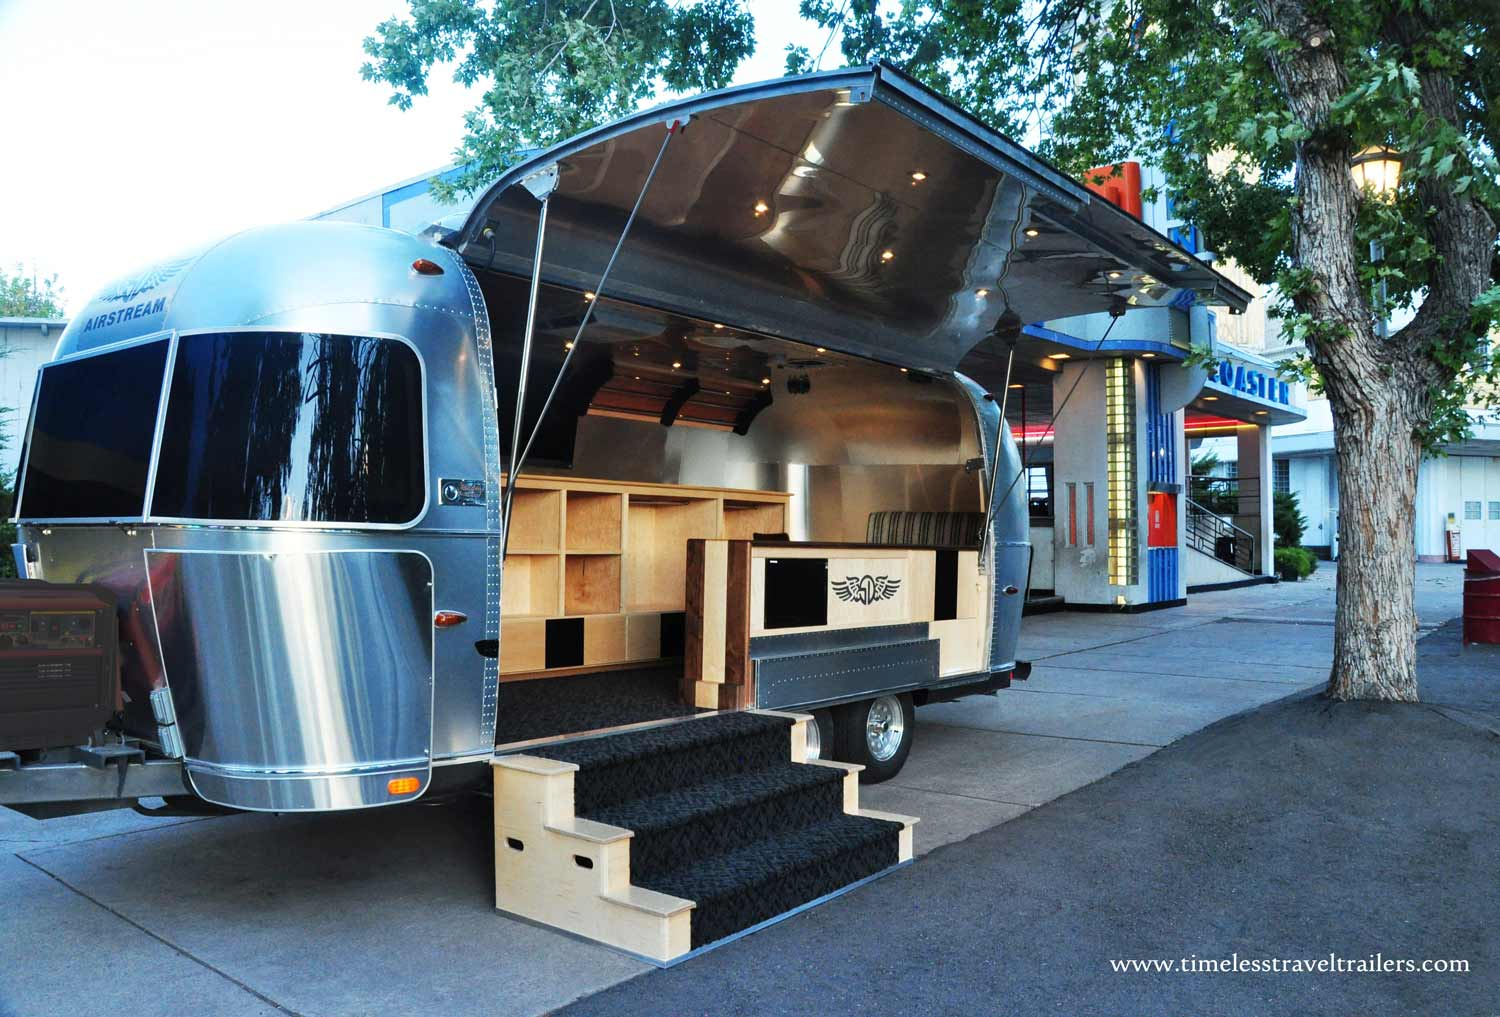 Golf Apparel On Tour In An Airstream And Spartan Pop Up Shop